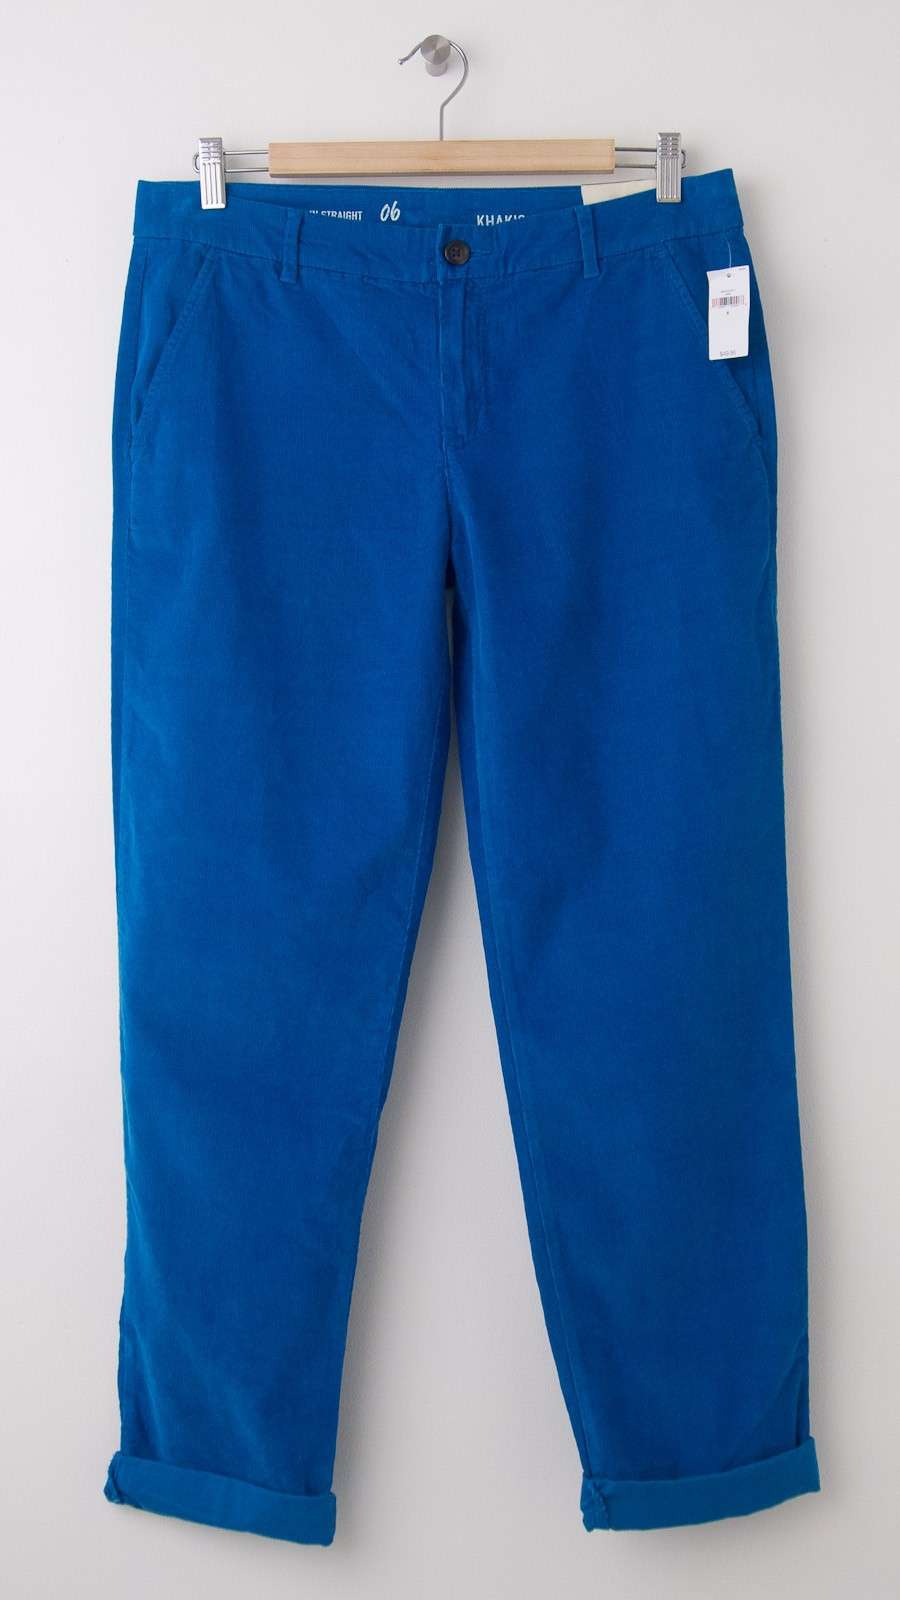 NEW Gap Broken-In Straight Corduroy Khaki Pants in Skater Blue